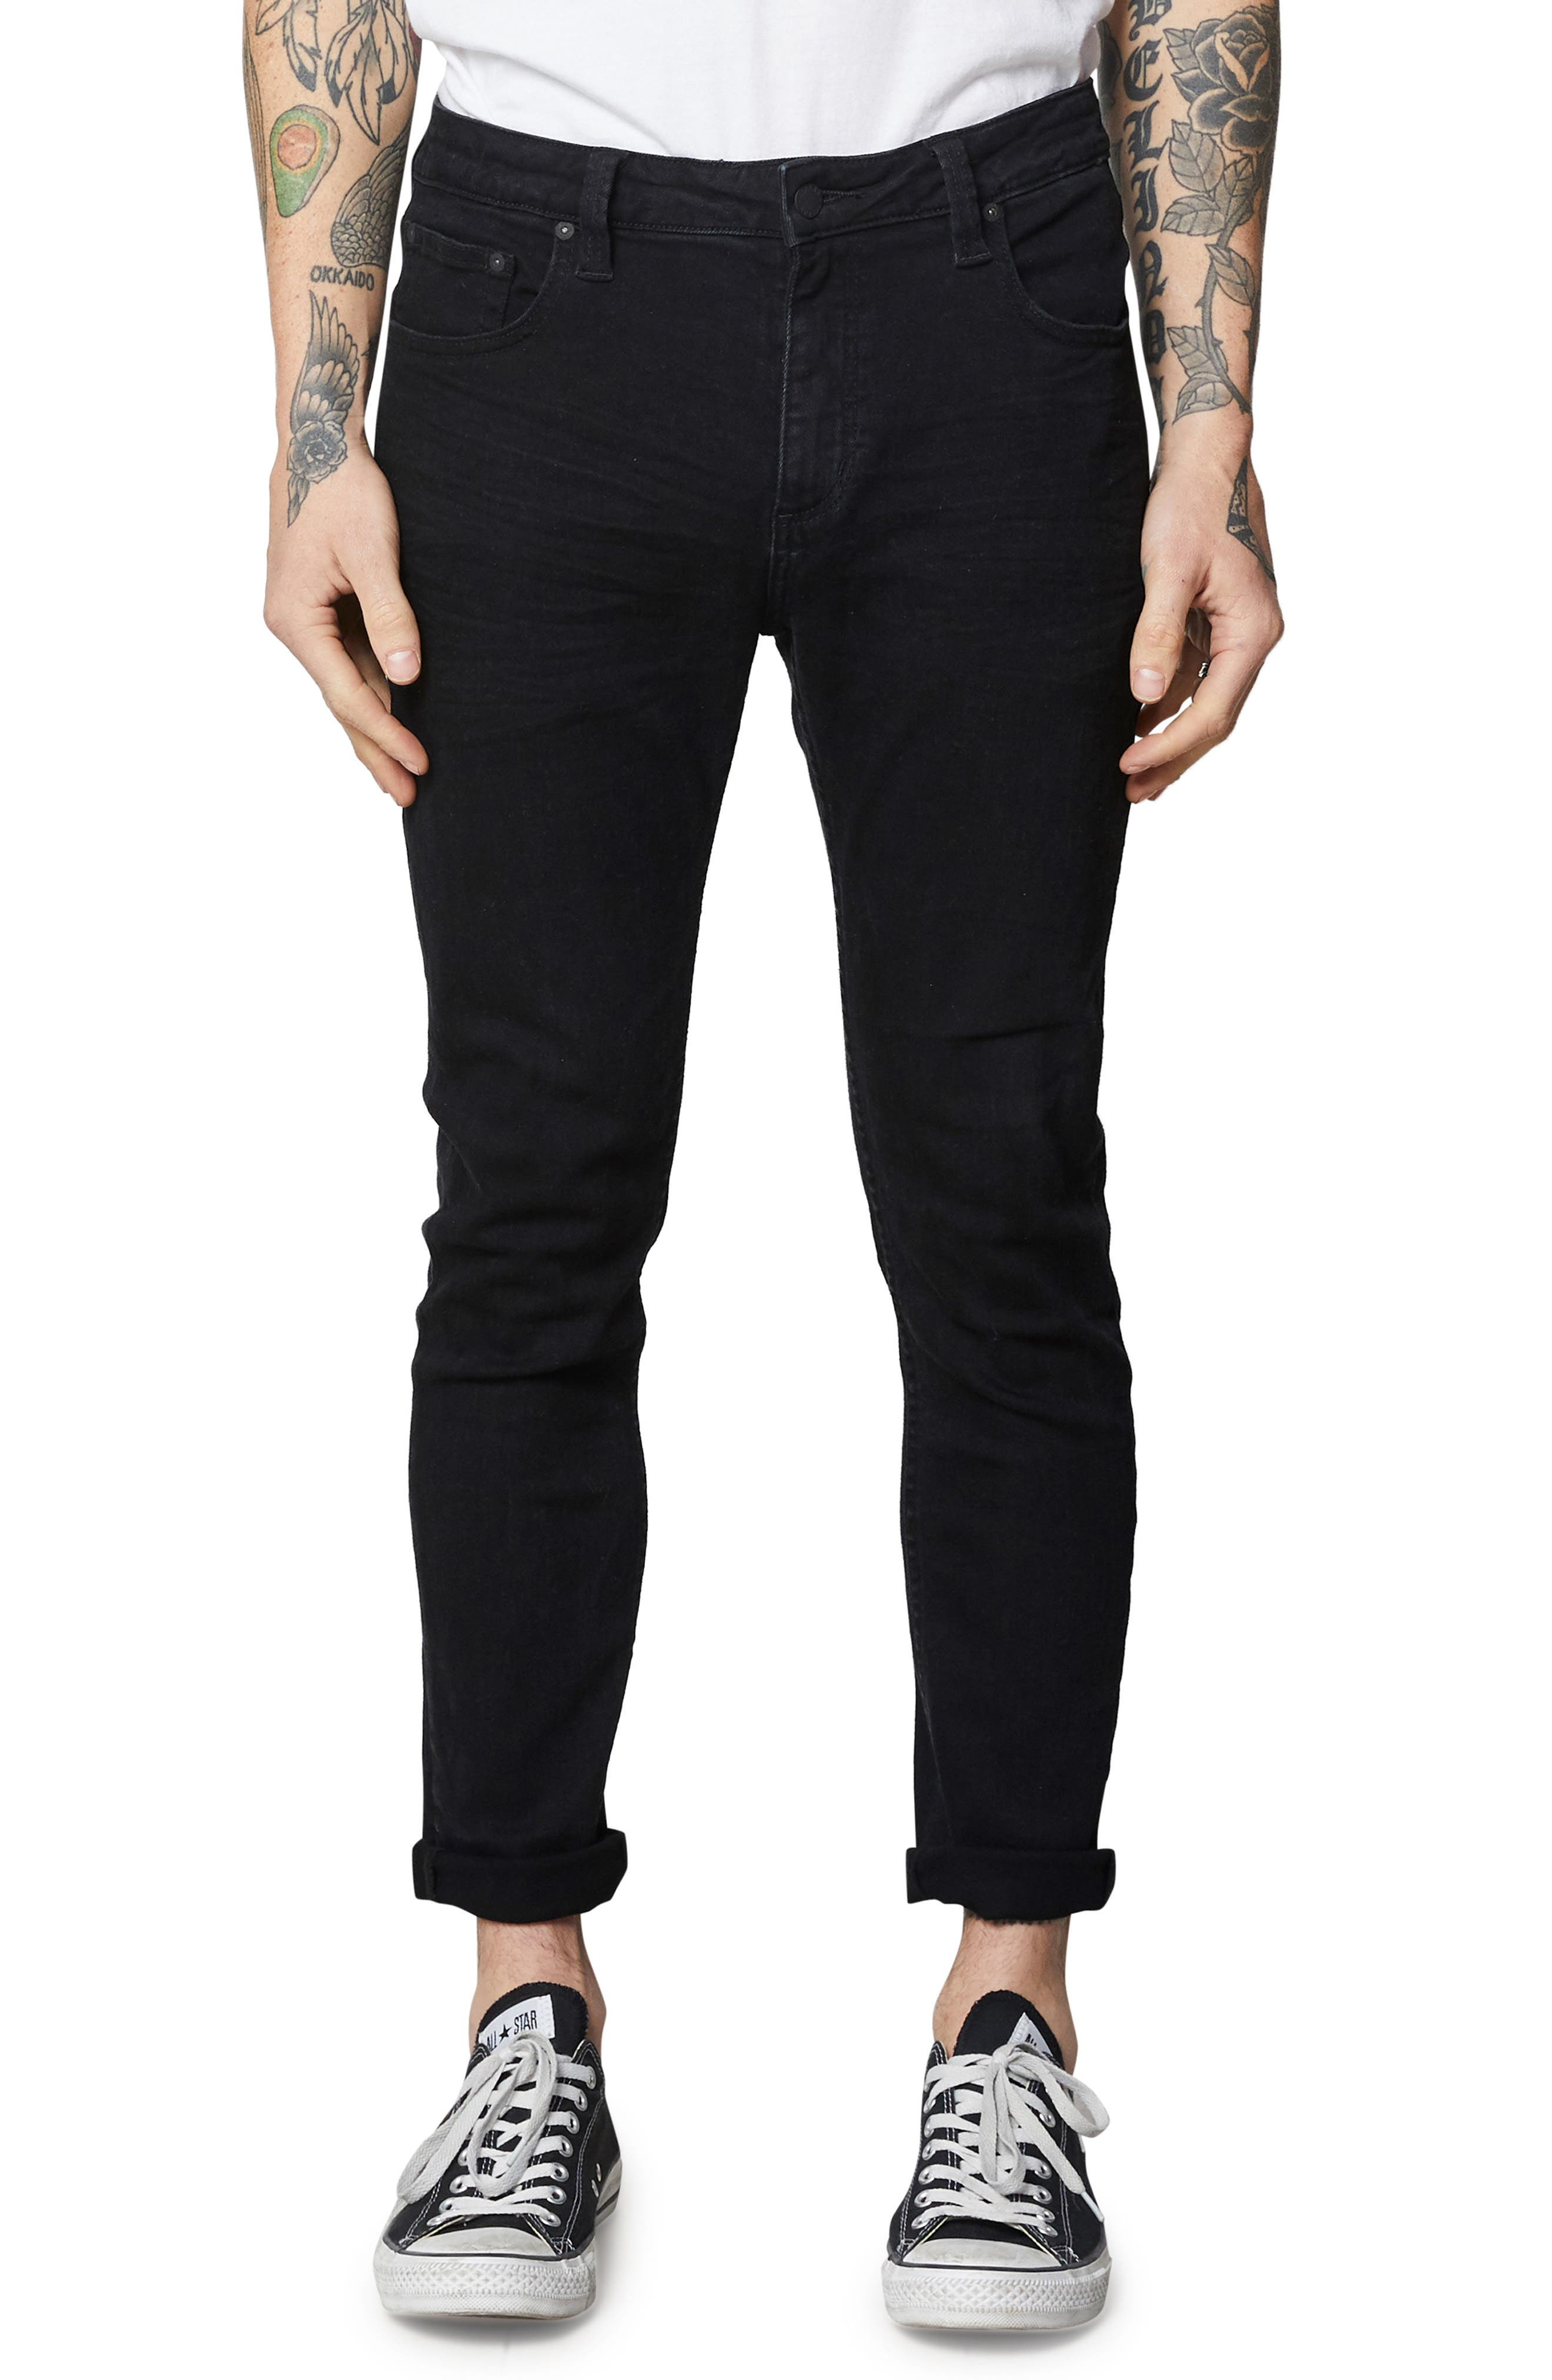 ROLLA'S Rollies Slim Fit Jeans in Black Raven